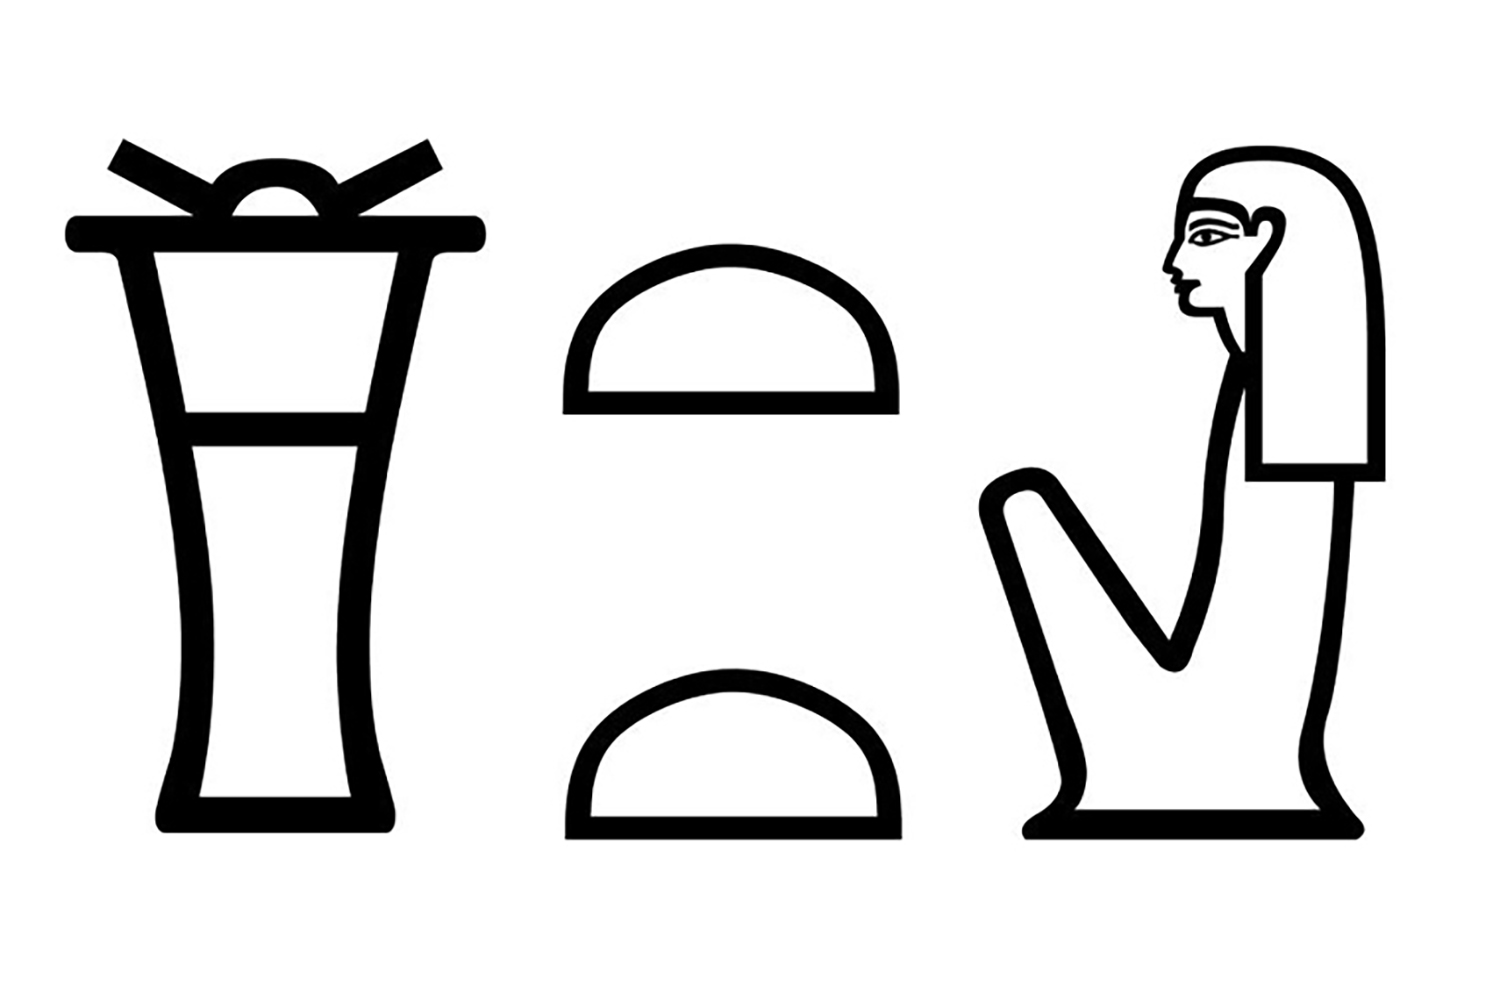 Figure 8: The name of Bastet in hieroglyphs.